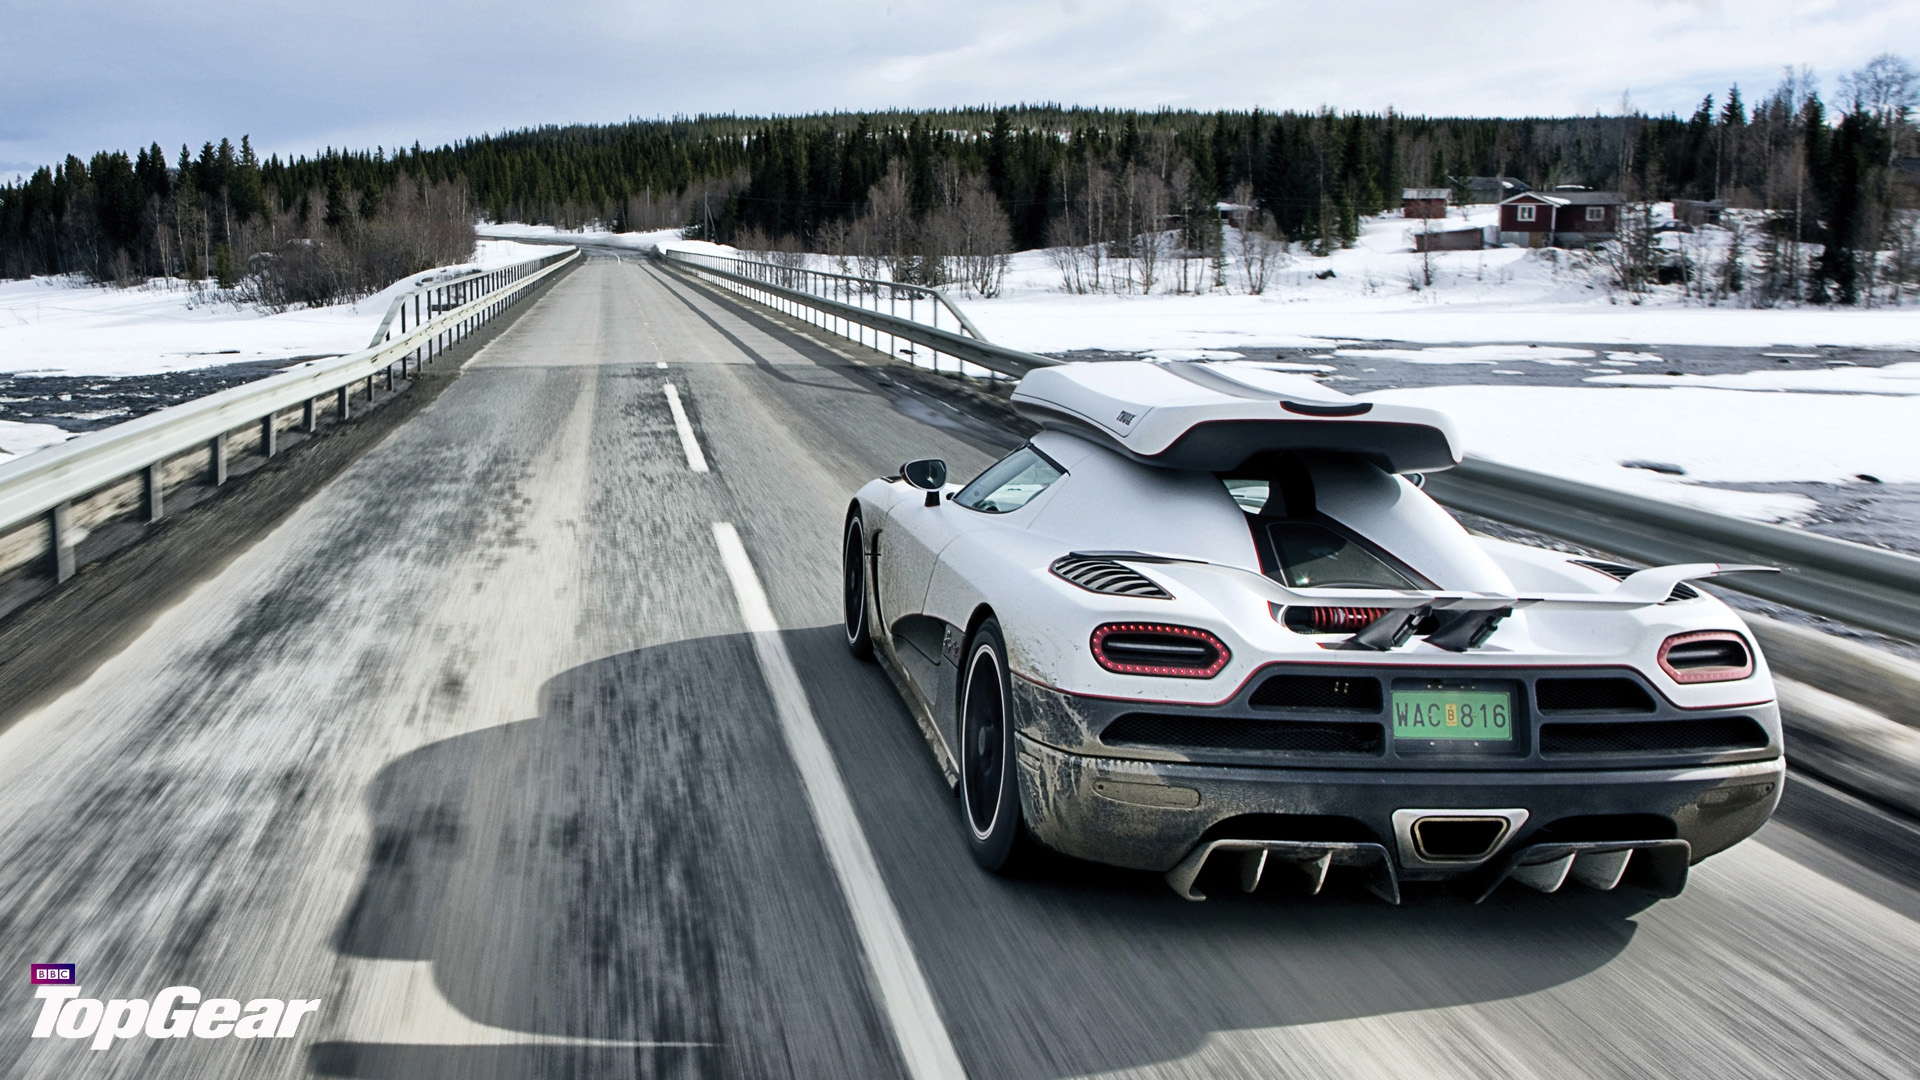 Koenigsegg Agera R Wallpapers High Quality Download Free